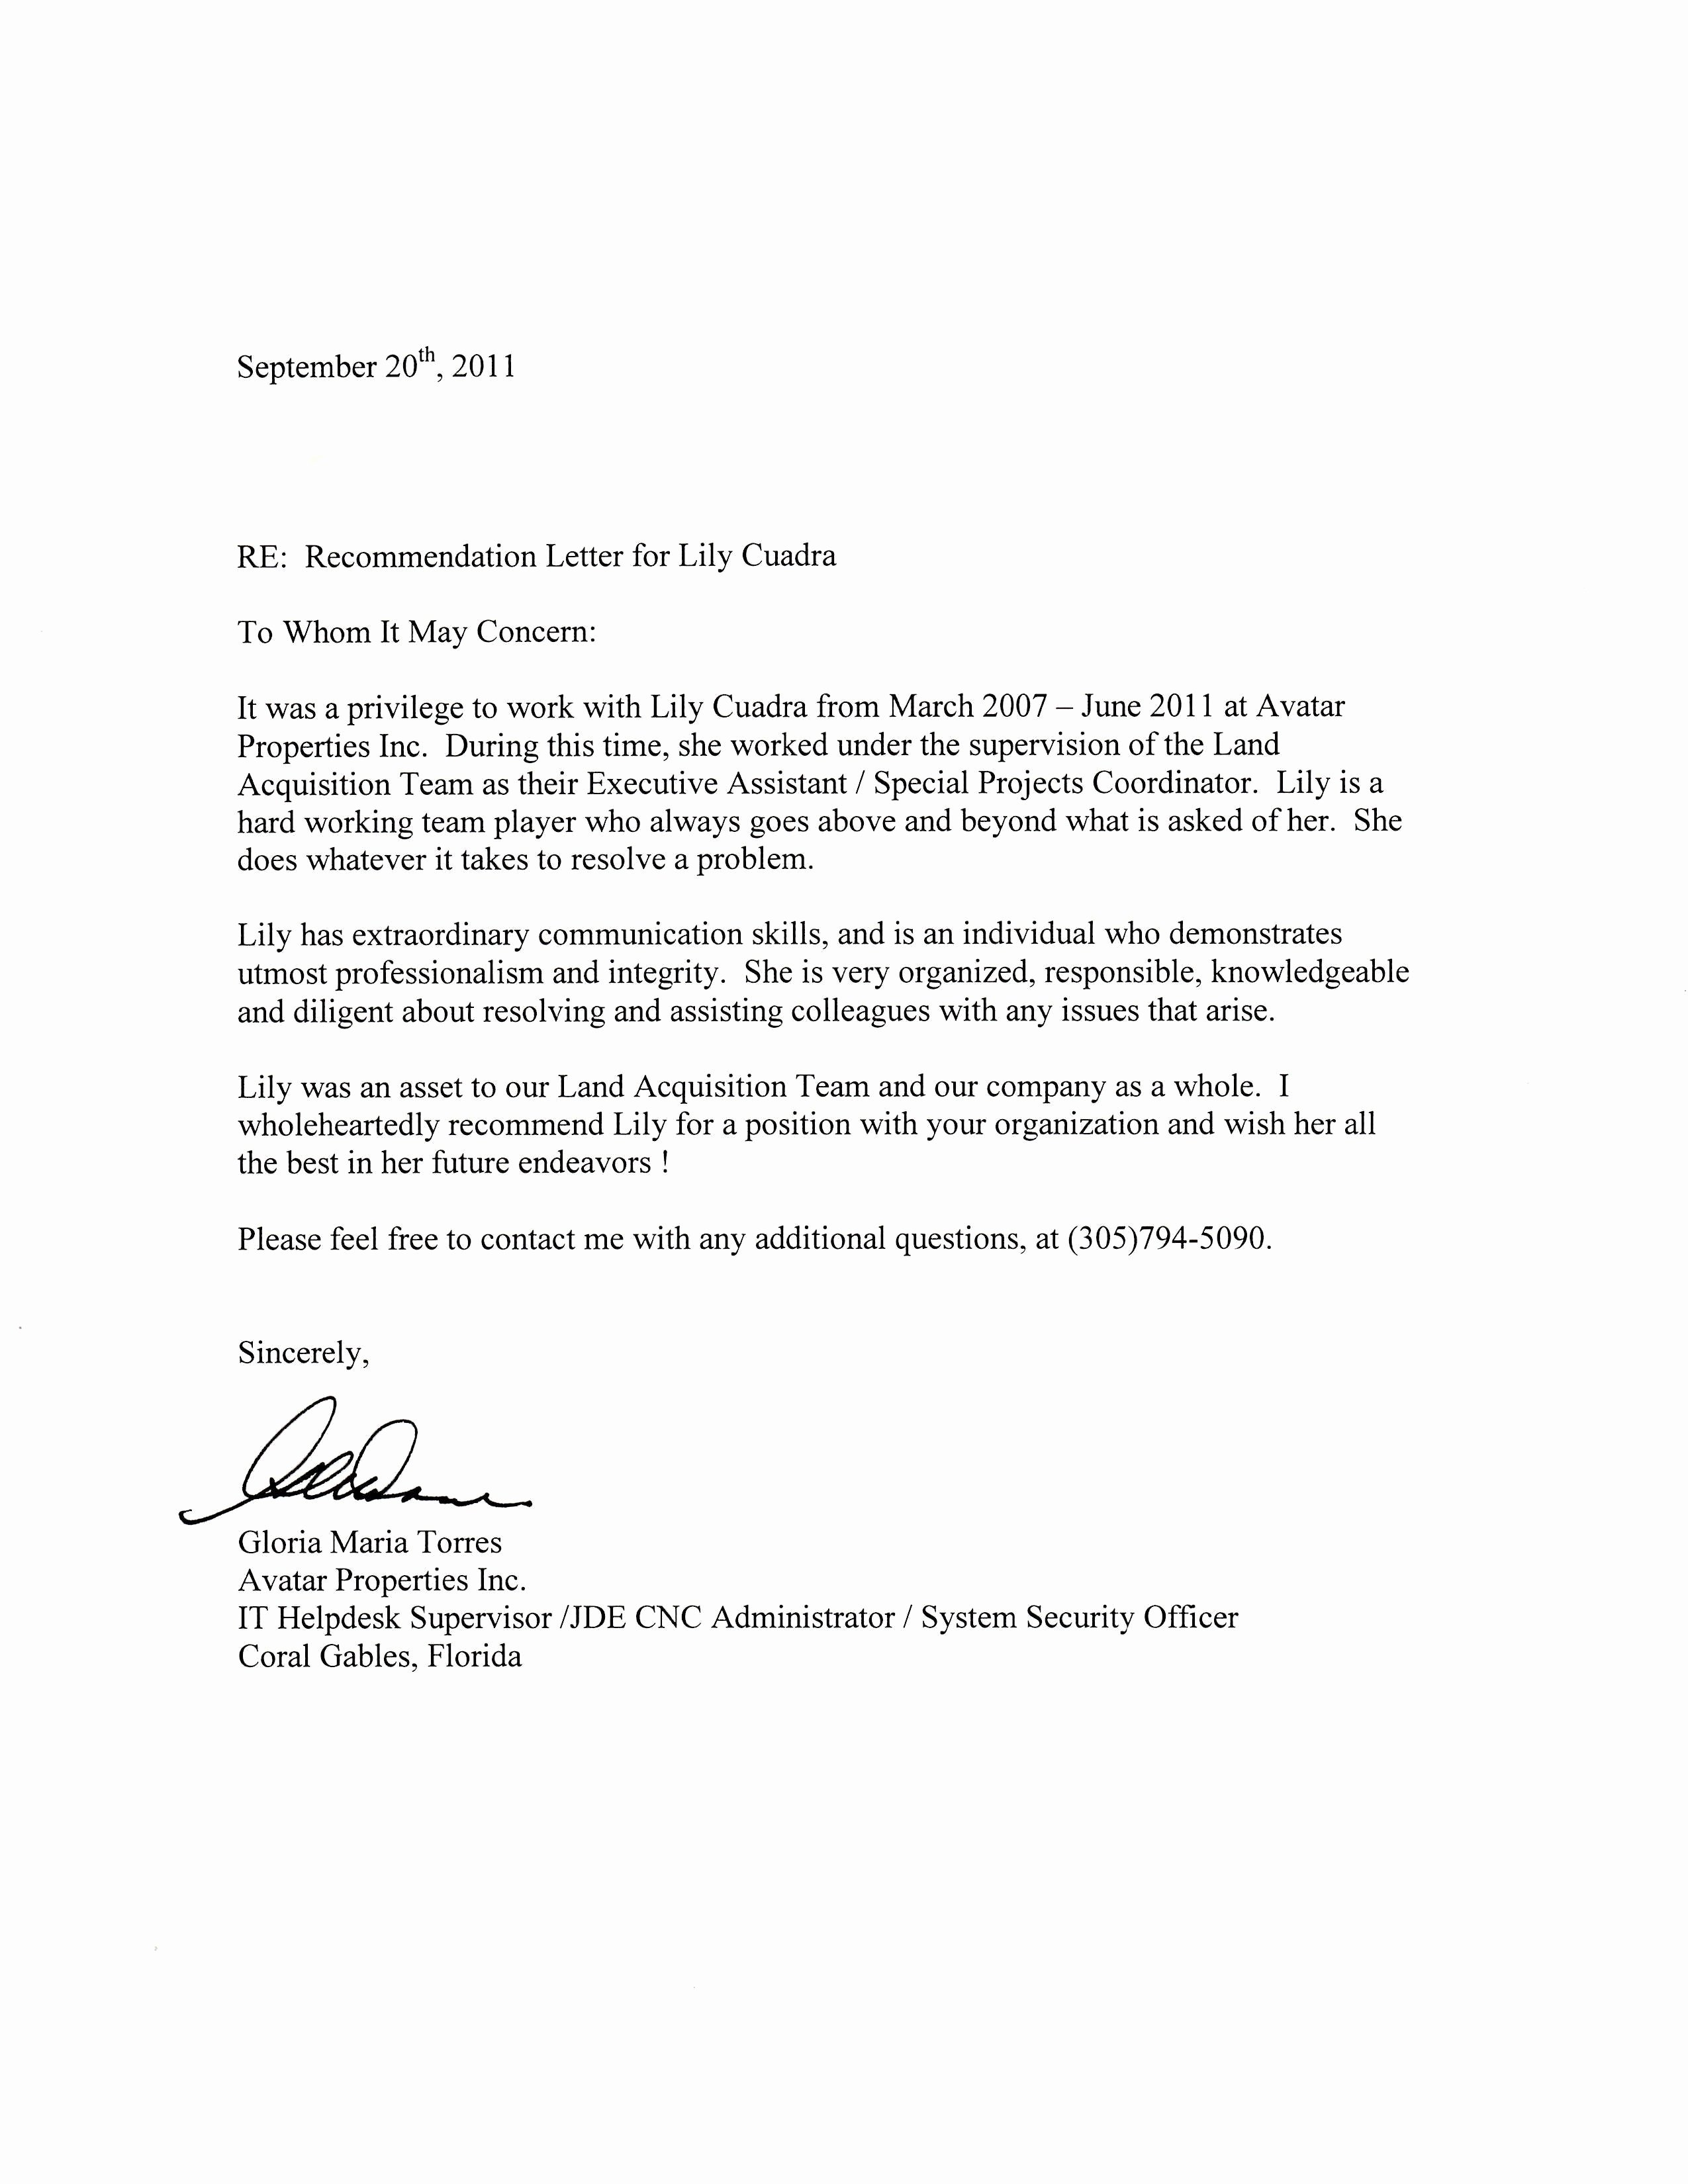 Business School Recommendation Letter Lovely Simple Guide Professional Reference Letter with Samples